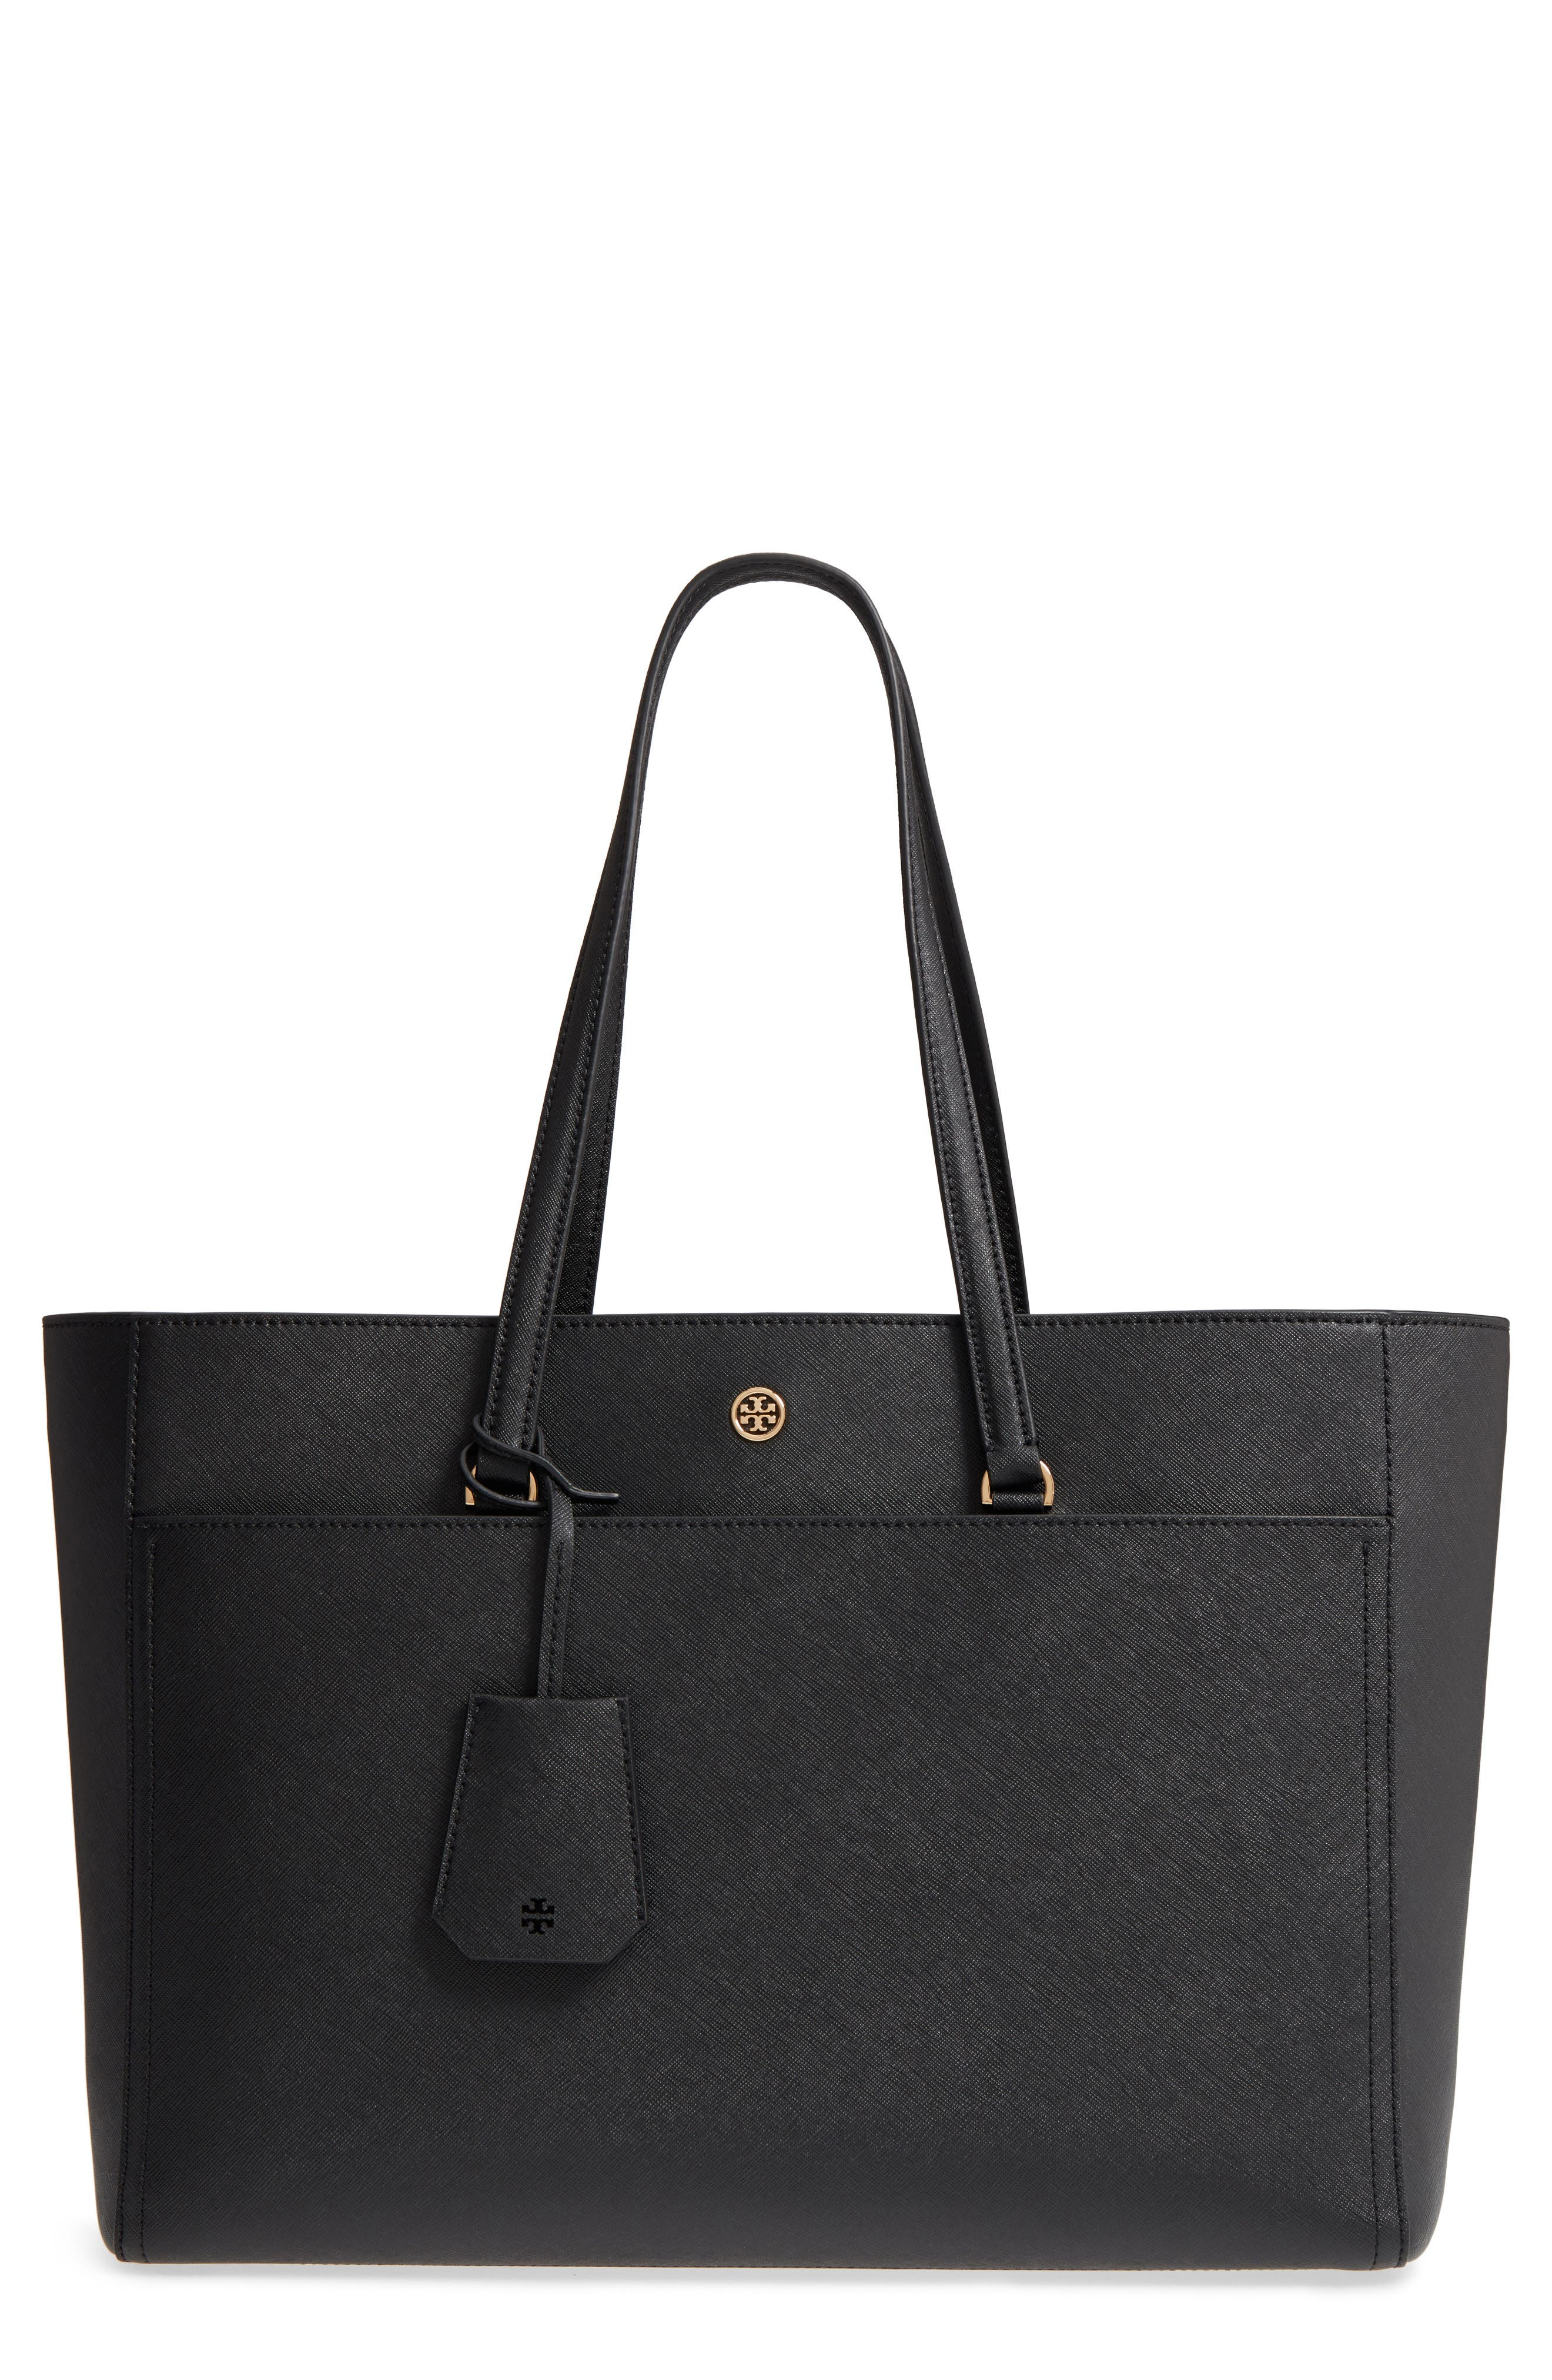 TORY BURCH,                             Robinson Leather Tote,                             Main thumbnail 1, color,                             001